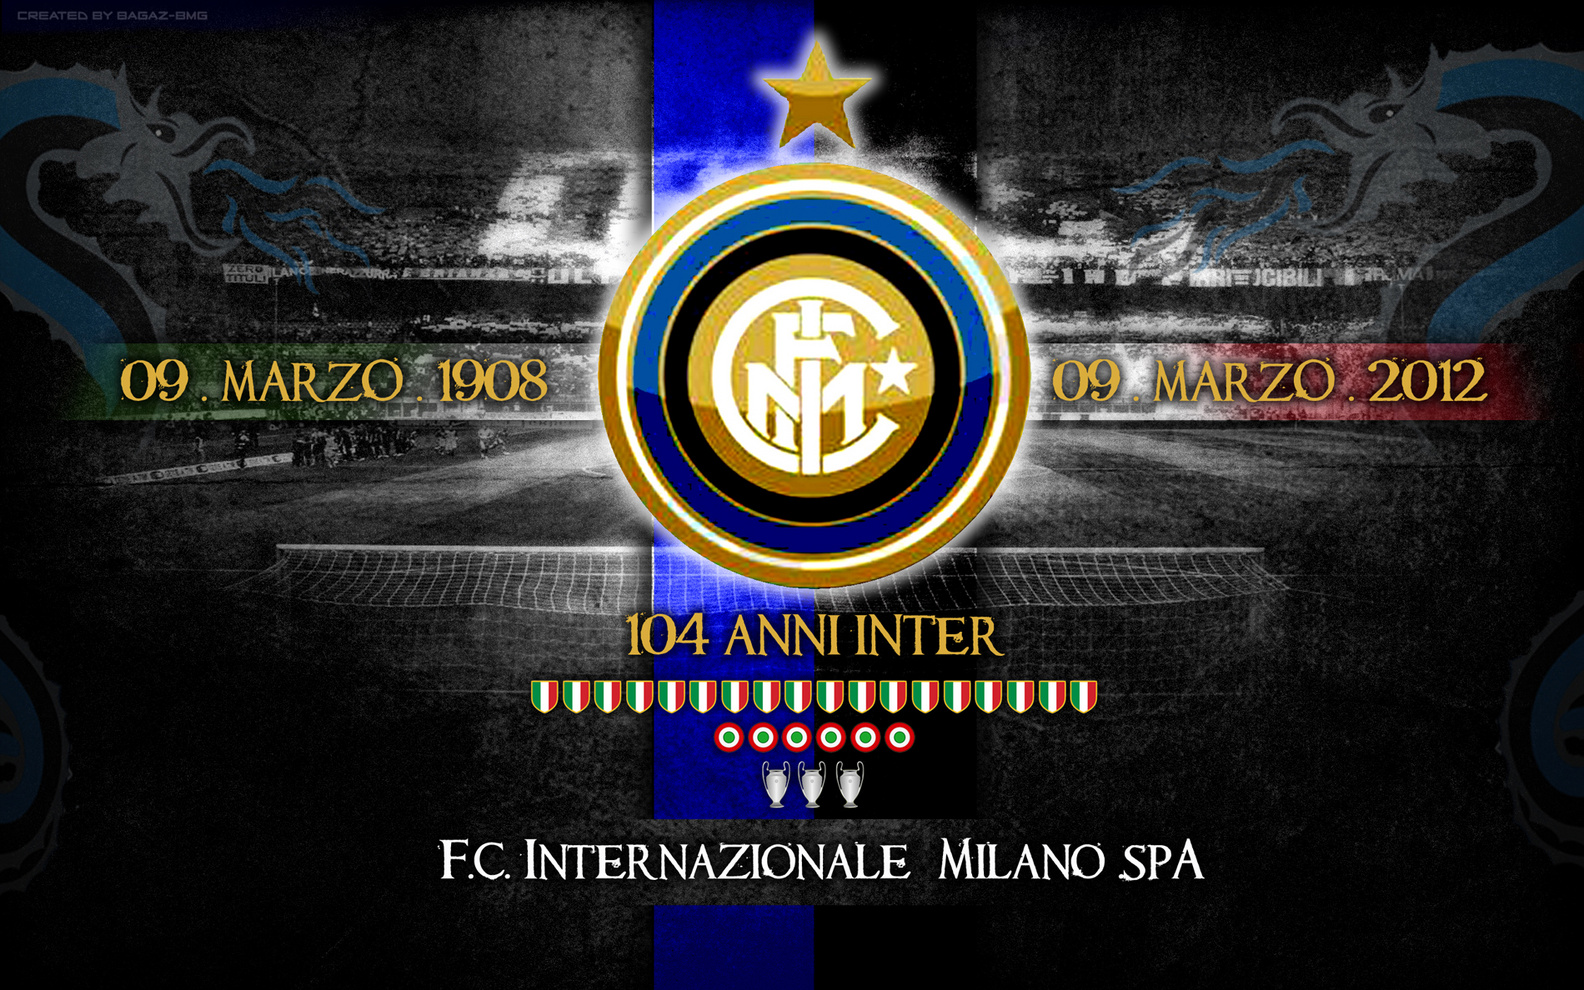 Inter milan wallpaper wallpapersafari inter milan wallpaper voltagebd Image collections